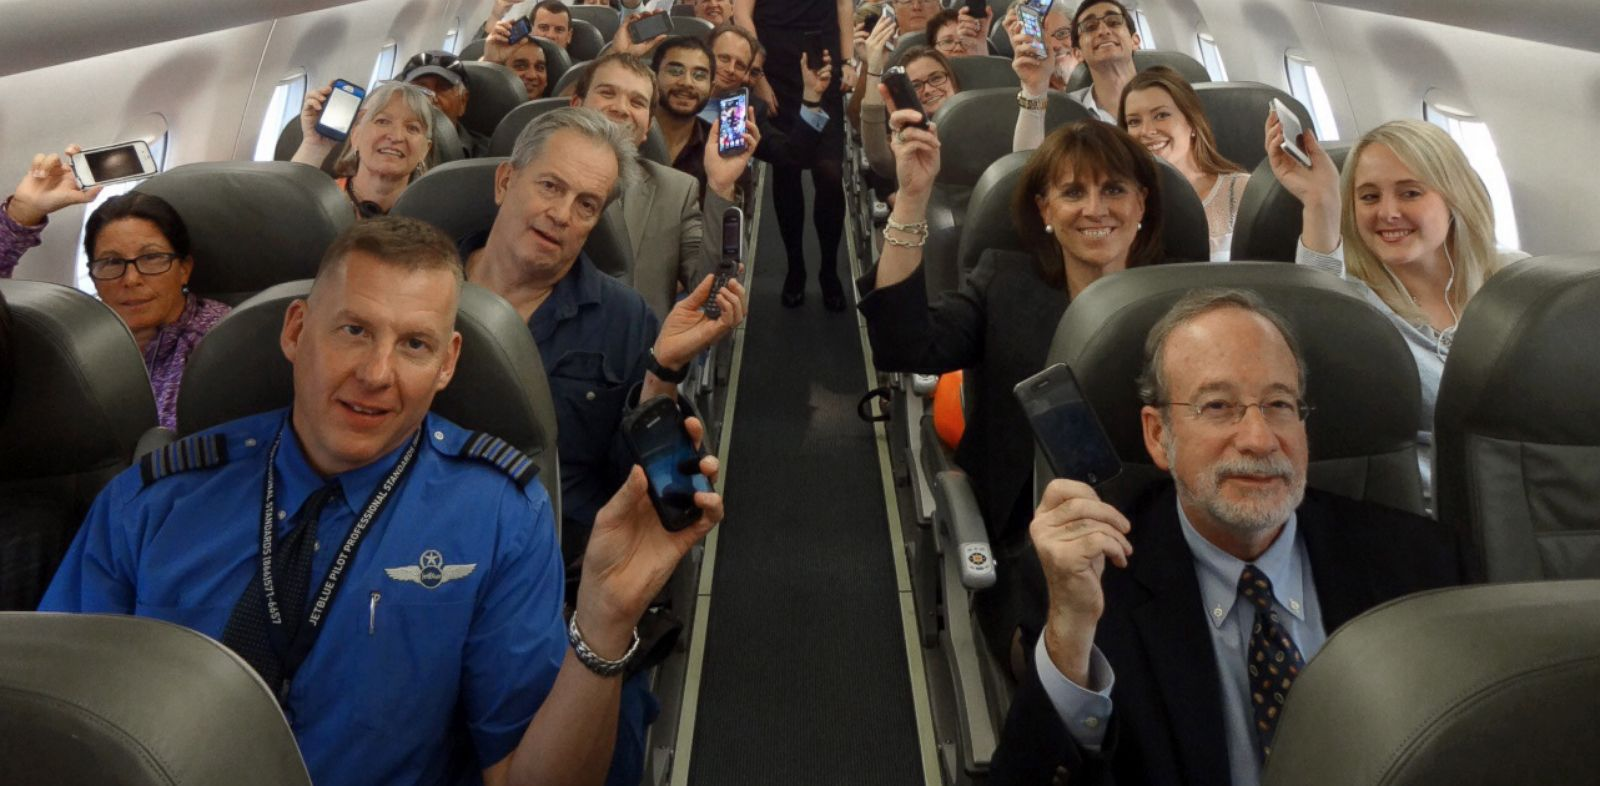 PHOTO: Passengers on JetBlue Flight 2302, the first flight to allow use of electronic devices during takeoff and landing.